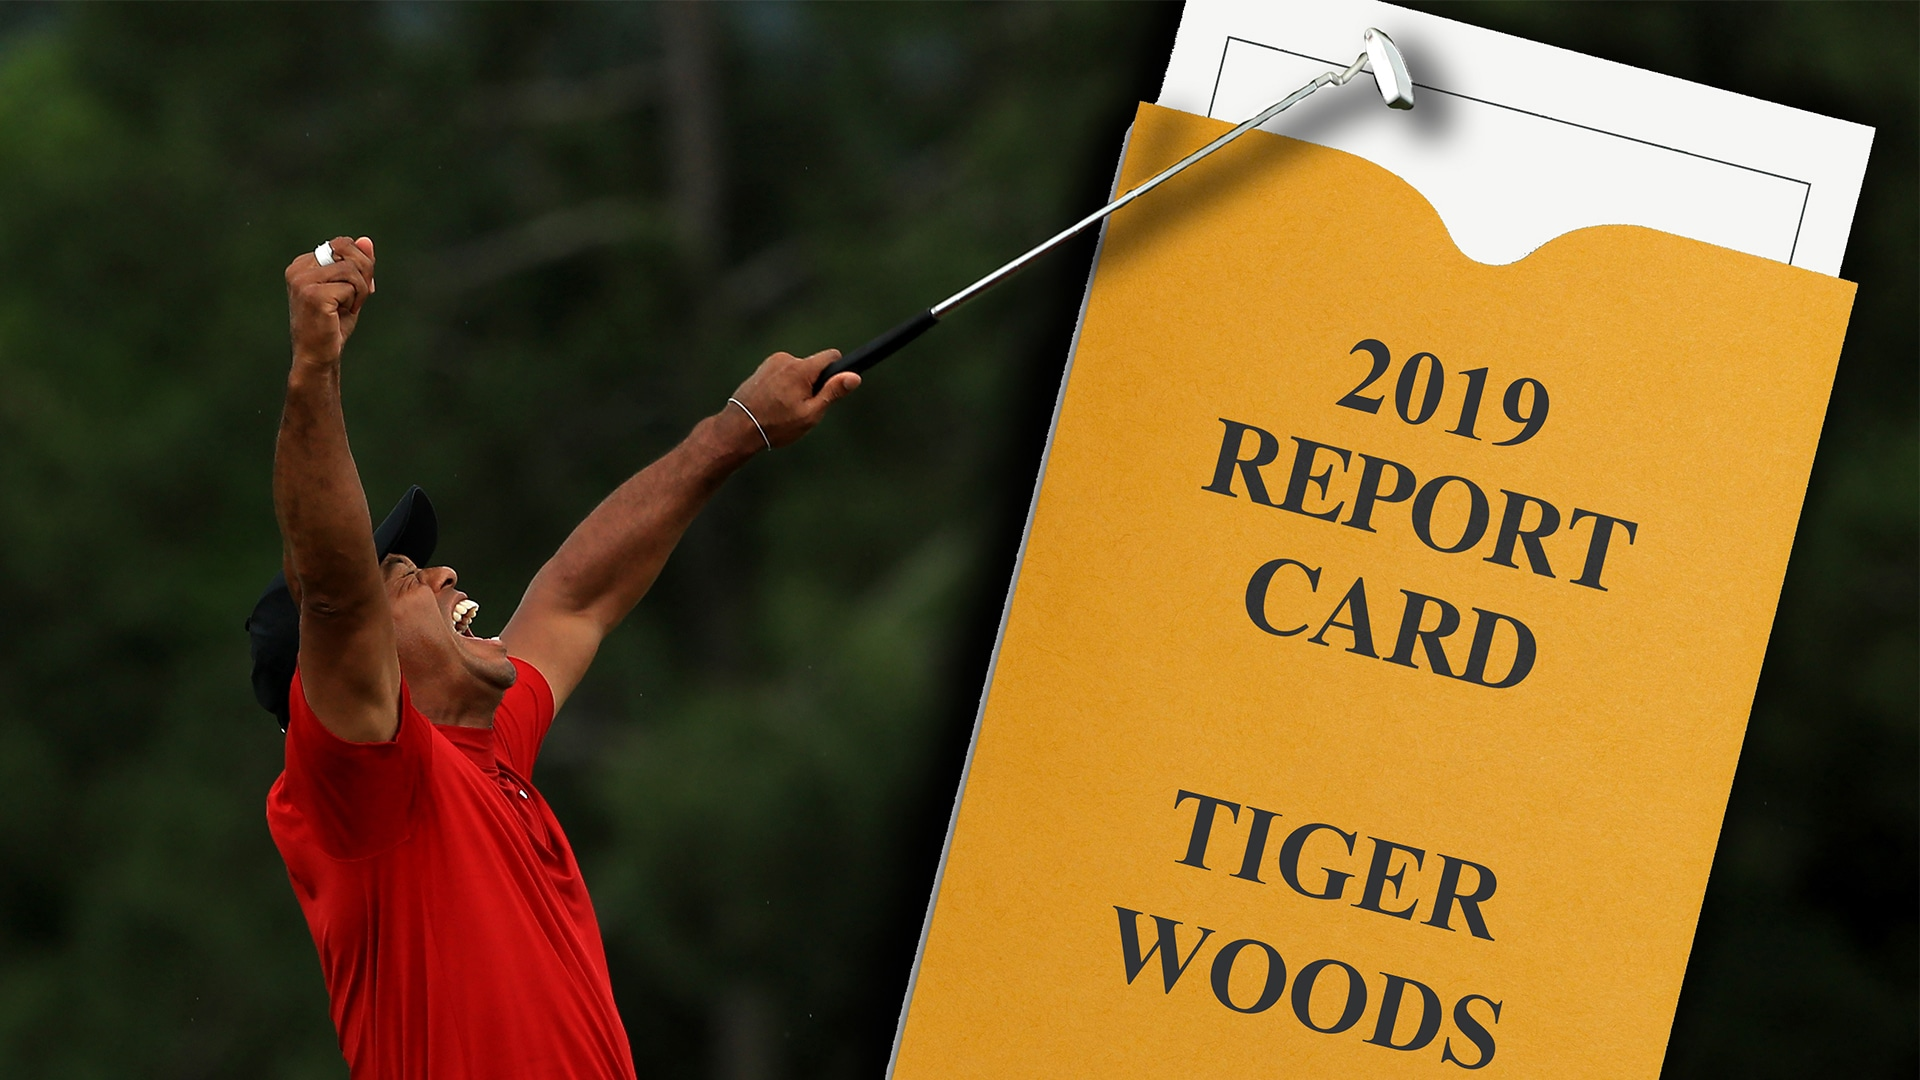 2019 Report Card: Tiger Woods